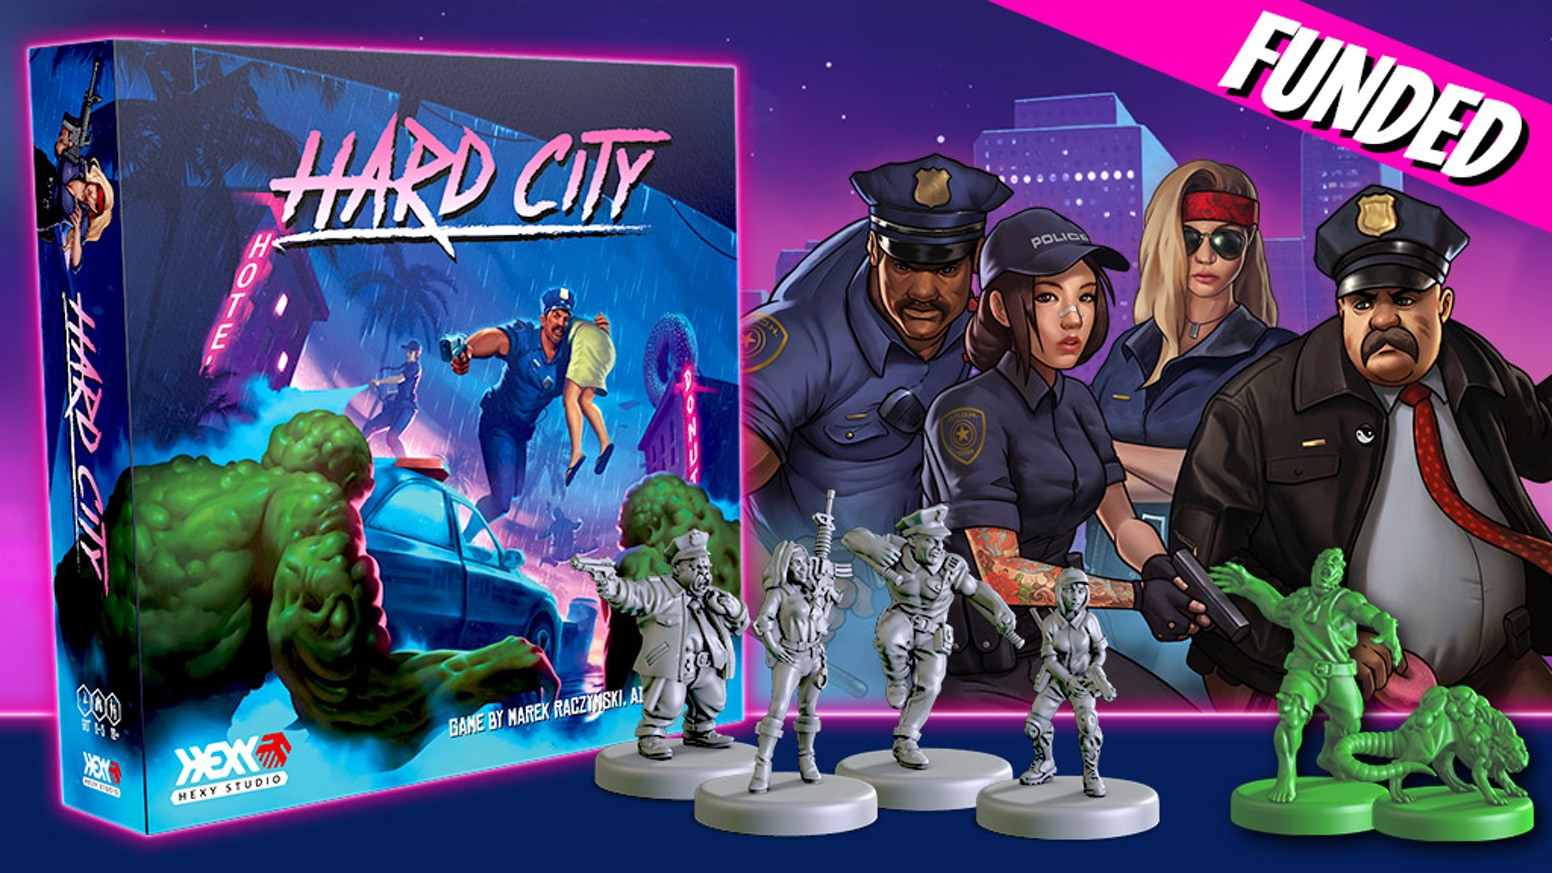 A game of adventure and tactics in an 80s-inspired new retro setting. Brave Police Officers versus evil Doctor Zero and his mutants.